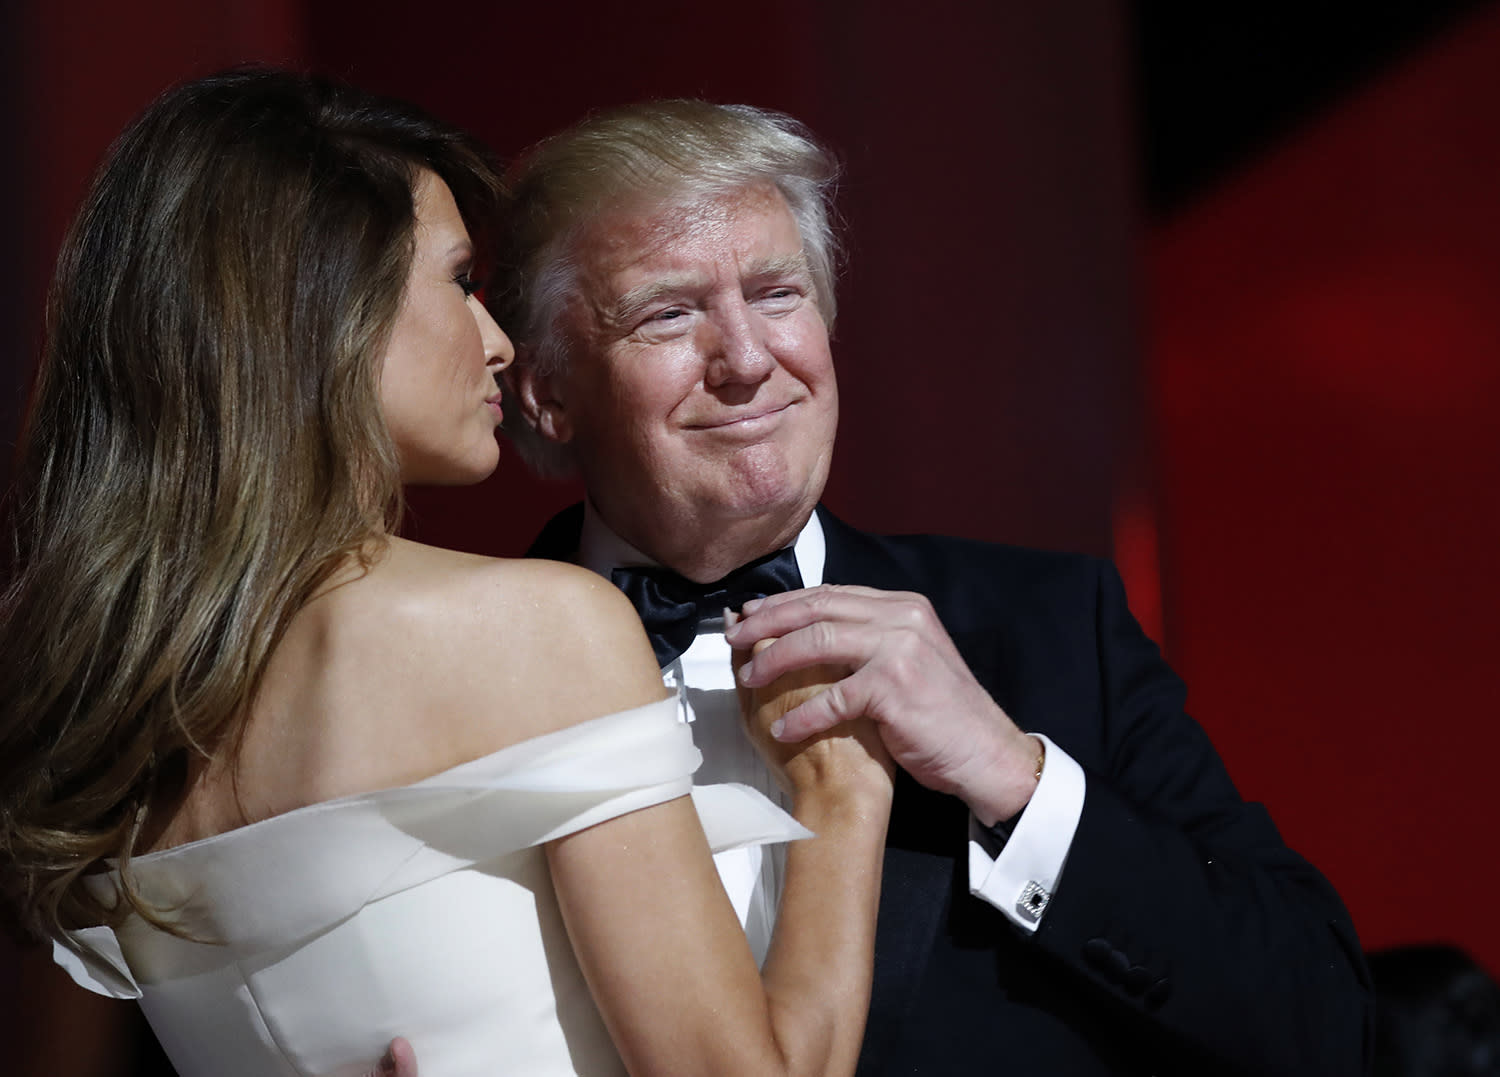 <p>President Donald Trump dances with first lady Melania Trump at the Liberty Ball, Friday, Jan. 20, 2017, in Washington. (Photo: Alex Brandon/AP) </p>